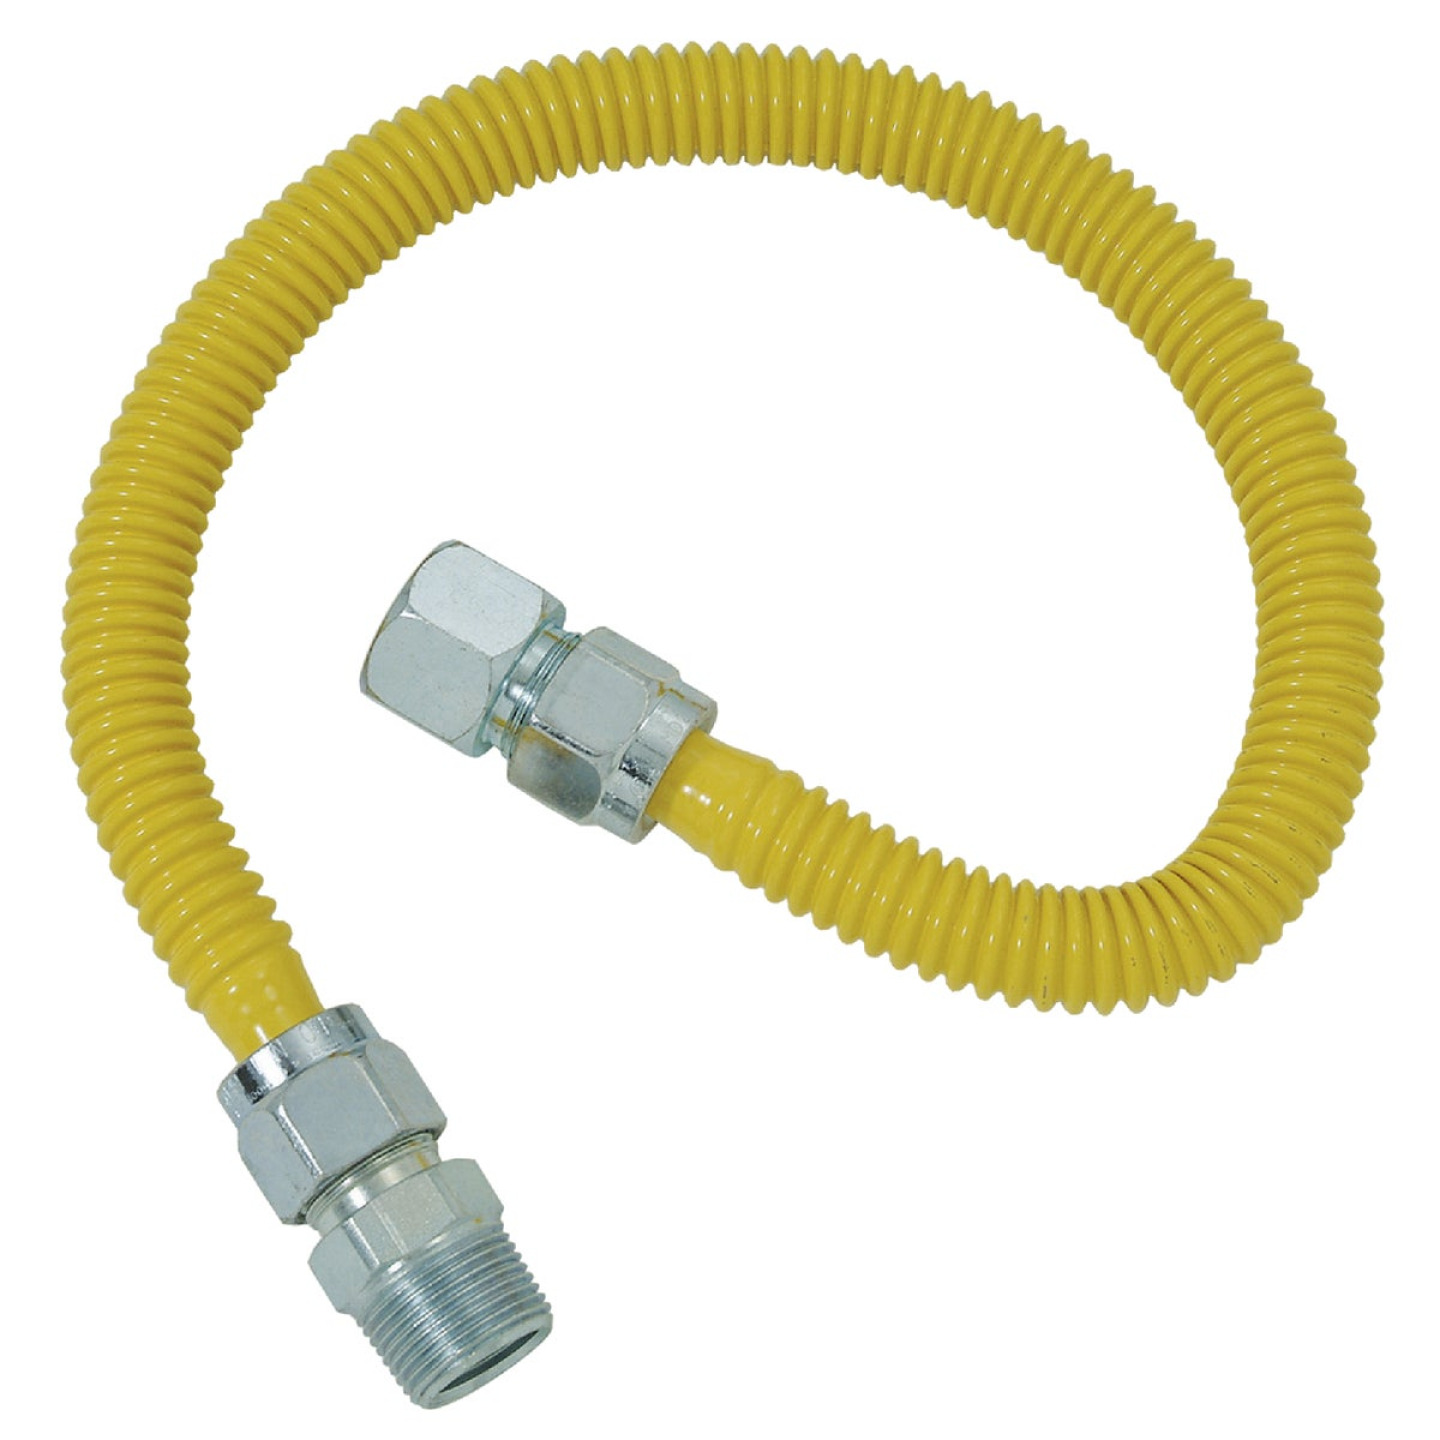 Dormont 5/8 In. OD x 24 In. Coated Stainless Steel Gas Connector, 3/4 In. FIP x 3/4 In. MIP (Tapped 1/2 In. FIP) Image 1